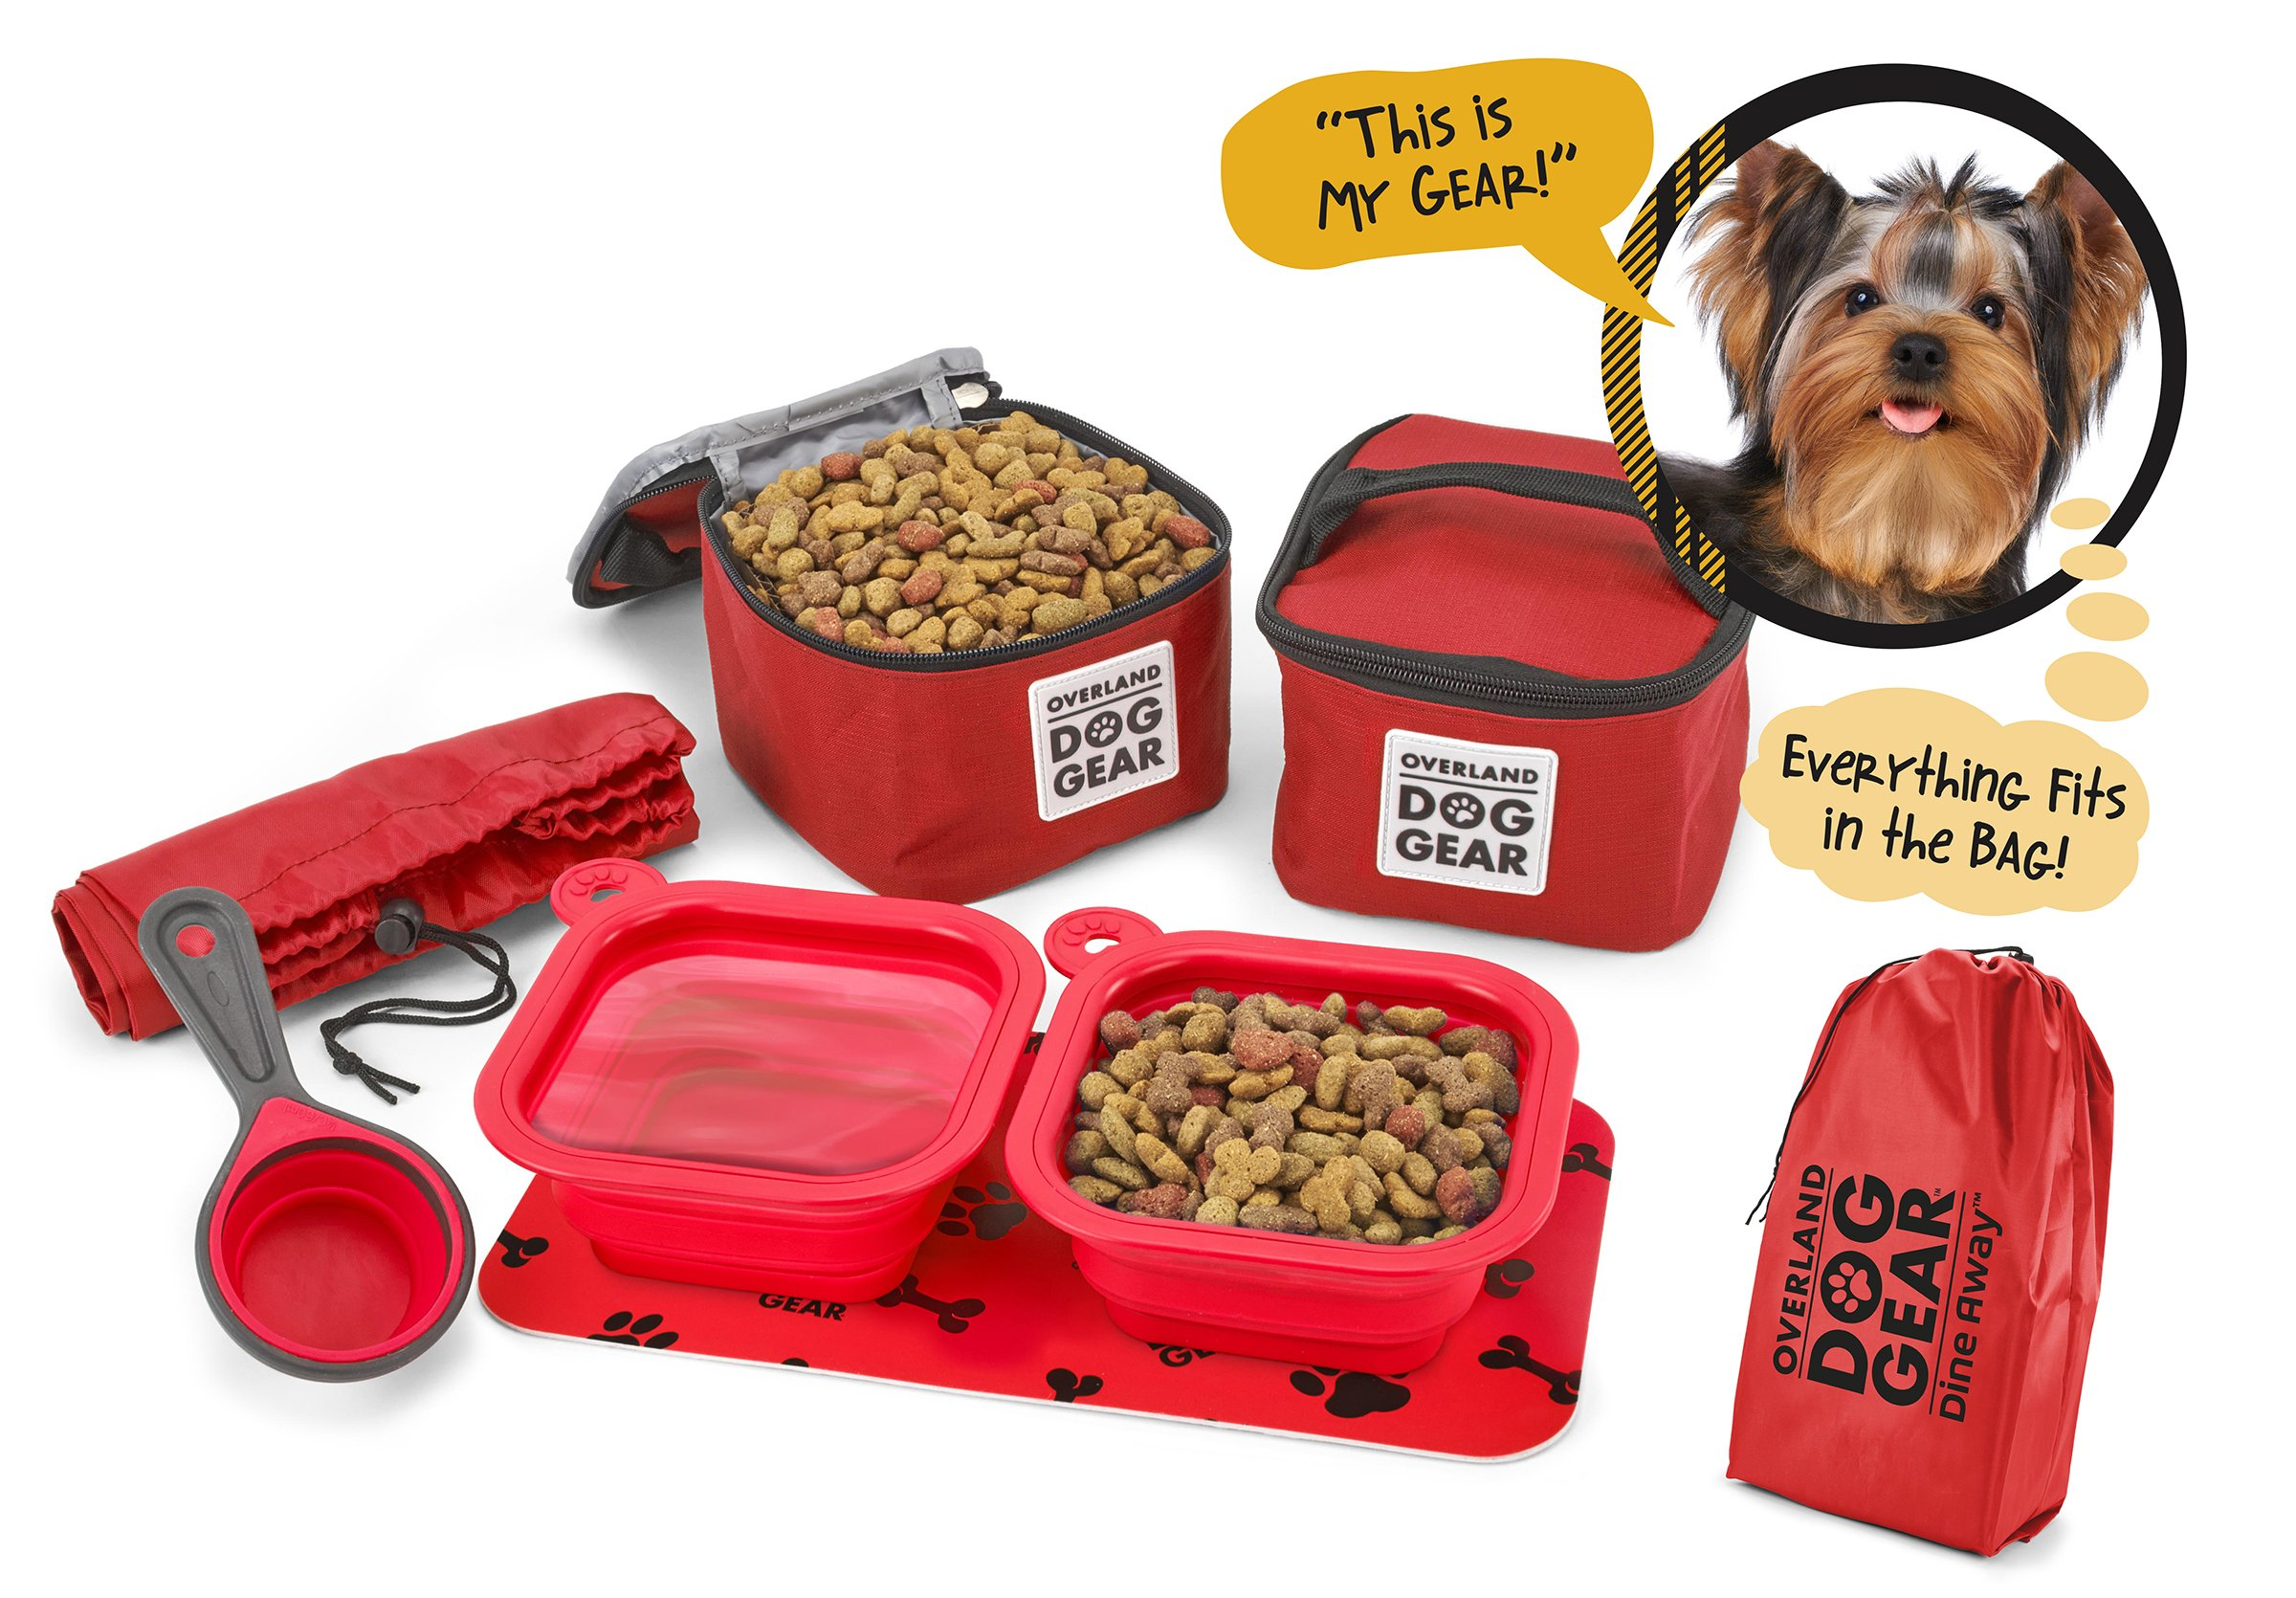 Dog Travel Food Set For Small Dogs (Red) - 7pk Including Collapsible Bowls, Carriers, Scooper, Place Mat, Bag